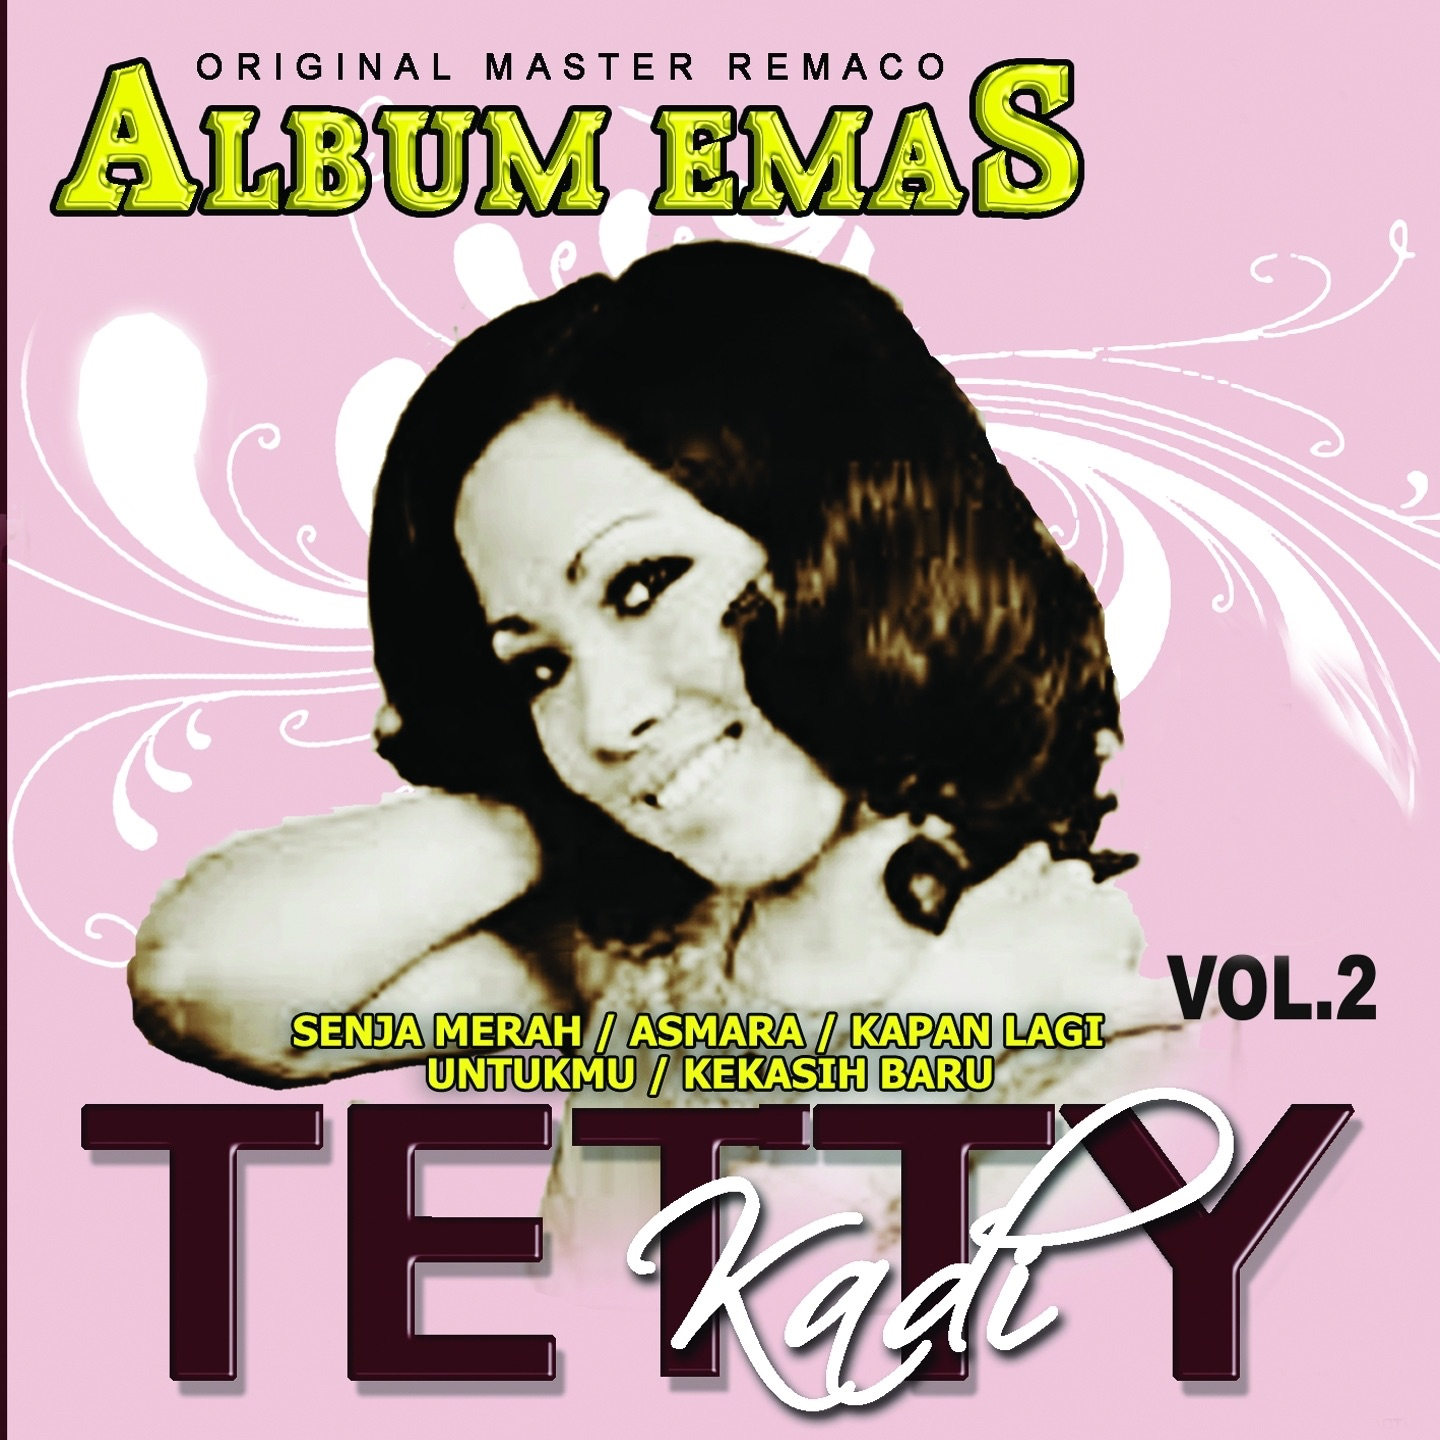 Album Emas Tetty Kadi, Vol. 2